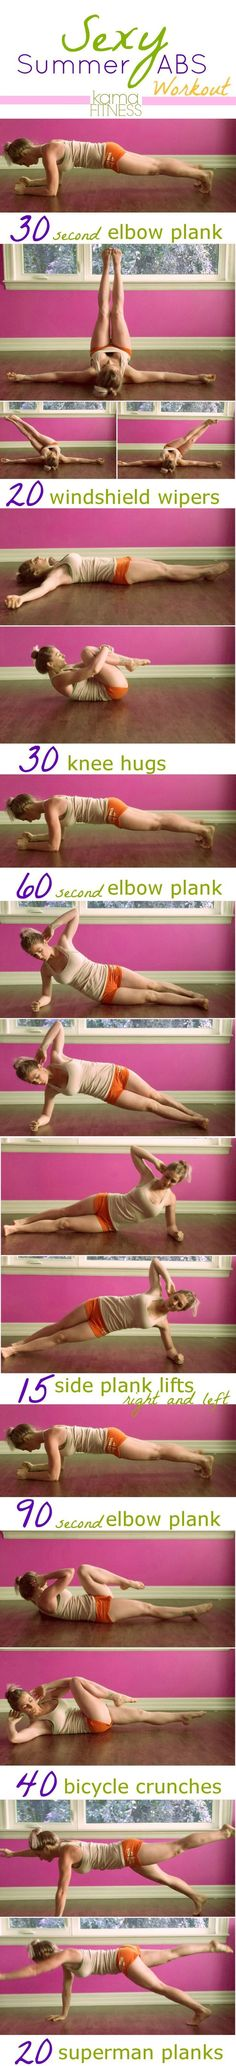 Sexy summer abs workout.. torch belly fat with these moves! I am so sore!